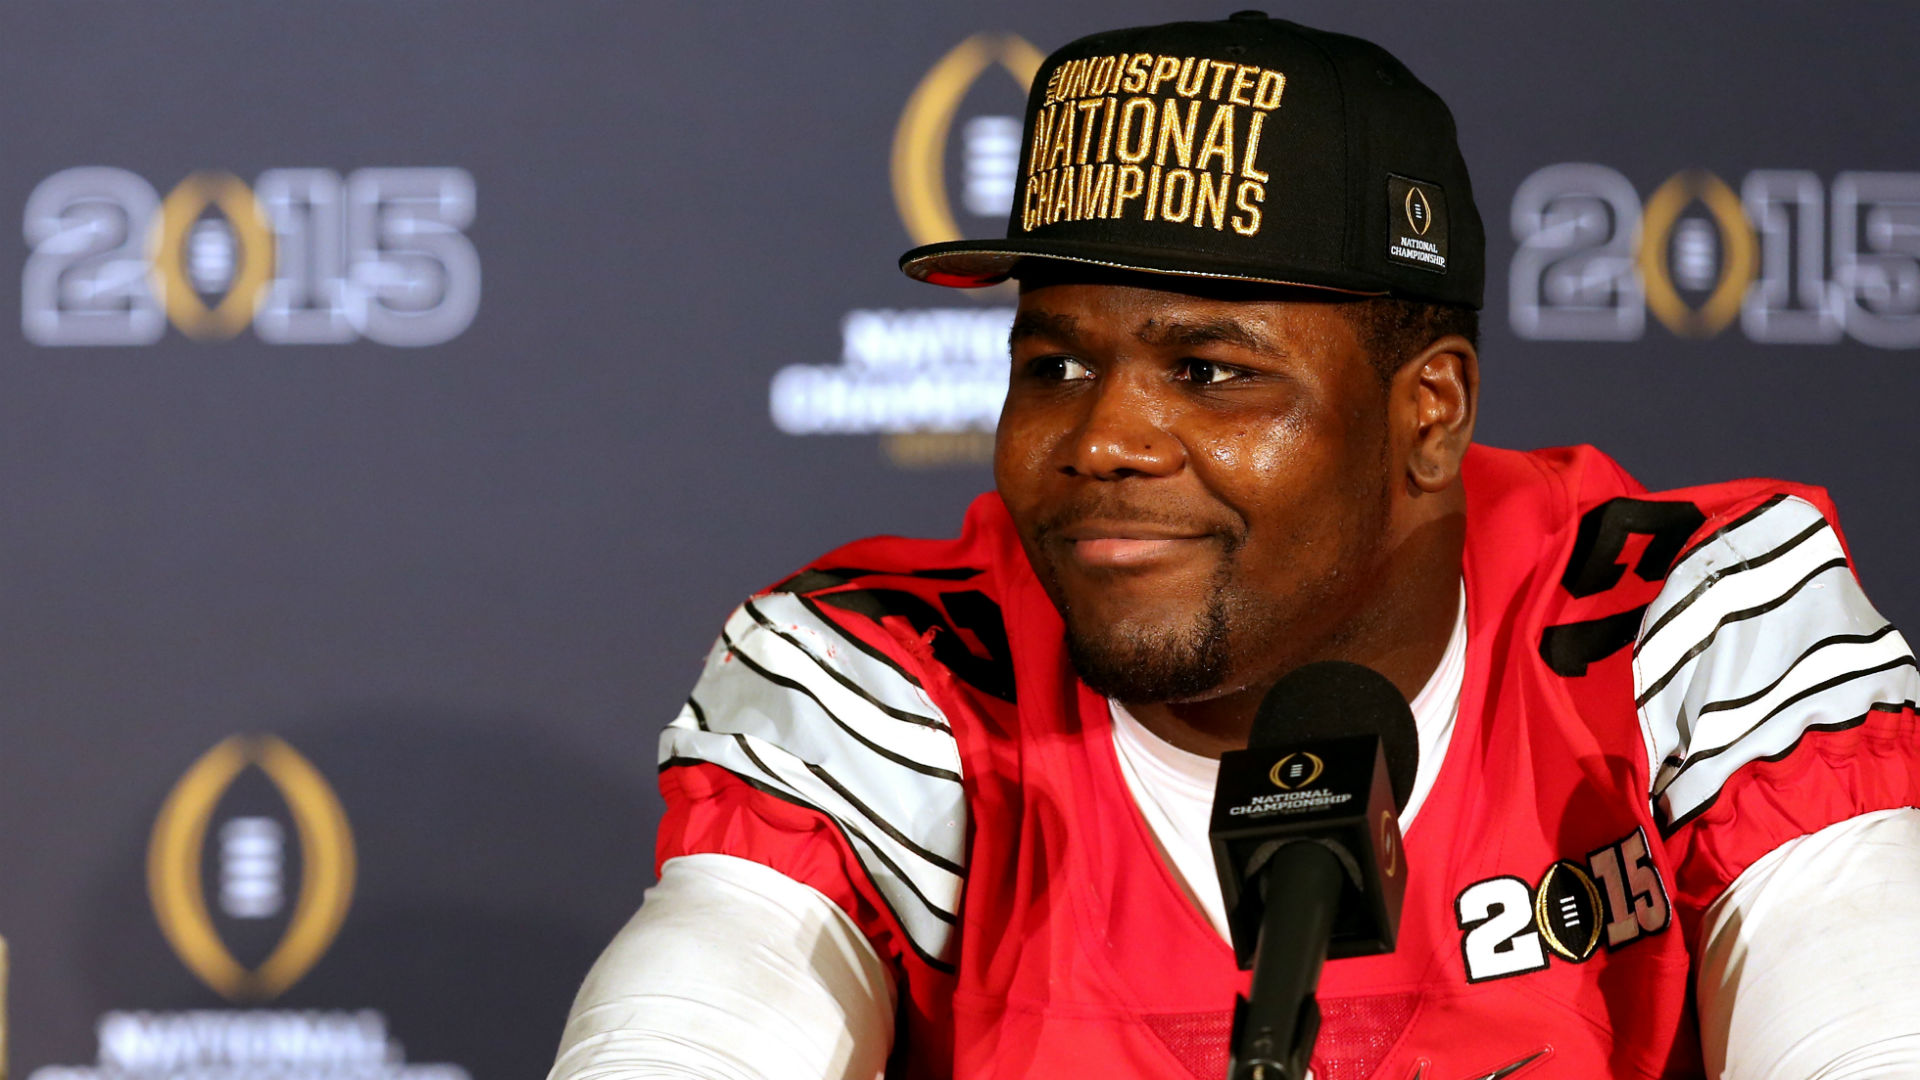 Ohio State QB Cardale Jones